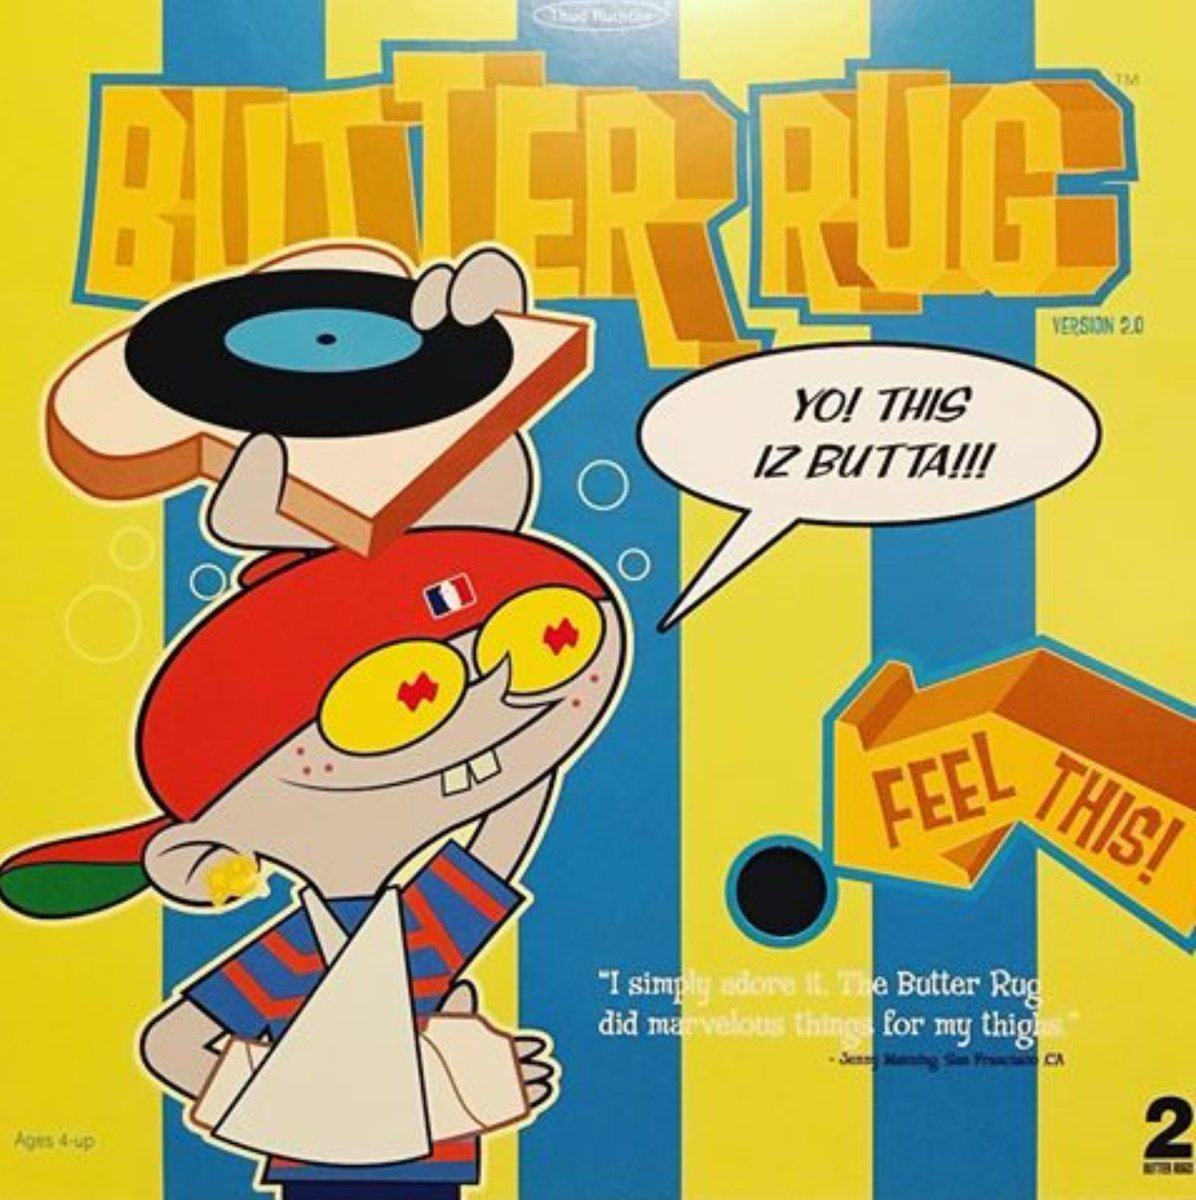 Dj Q Bert On Twitter New Butter Rugs 3 0 In Retro Cover Now 50